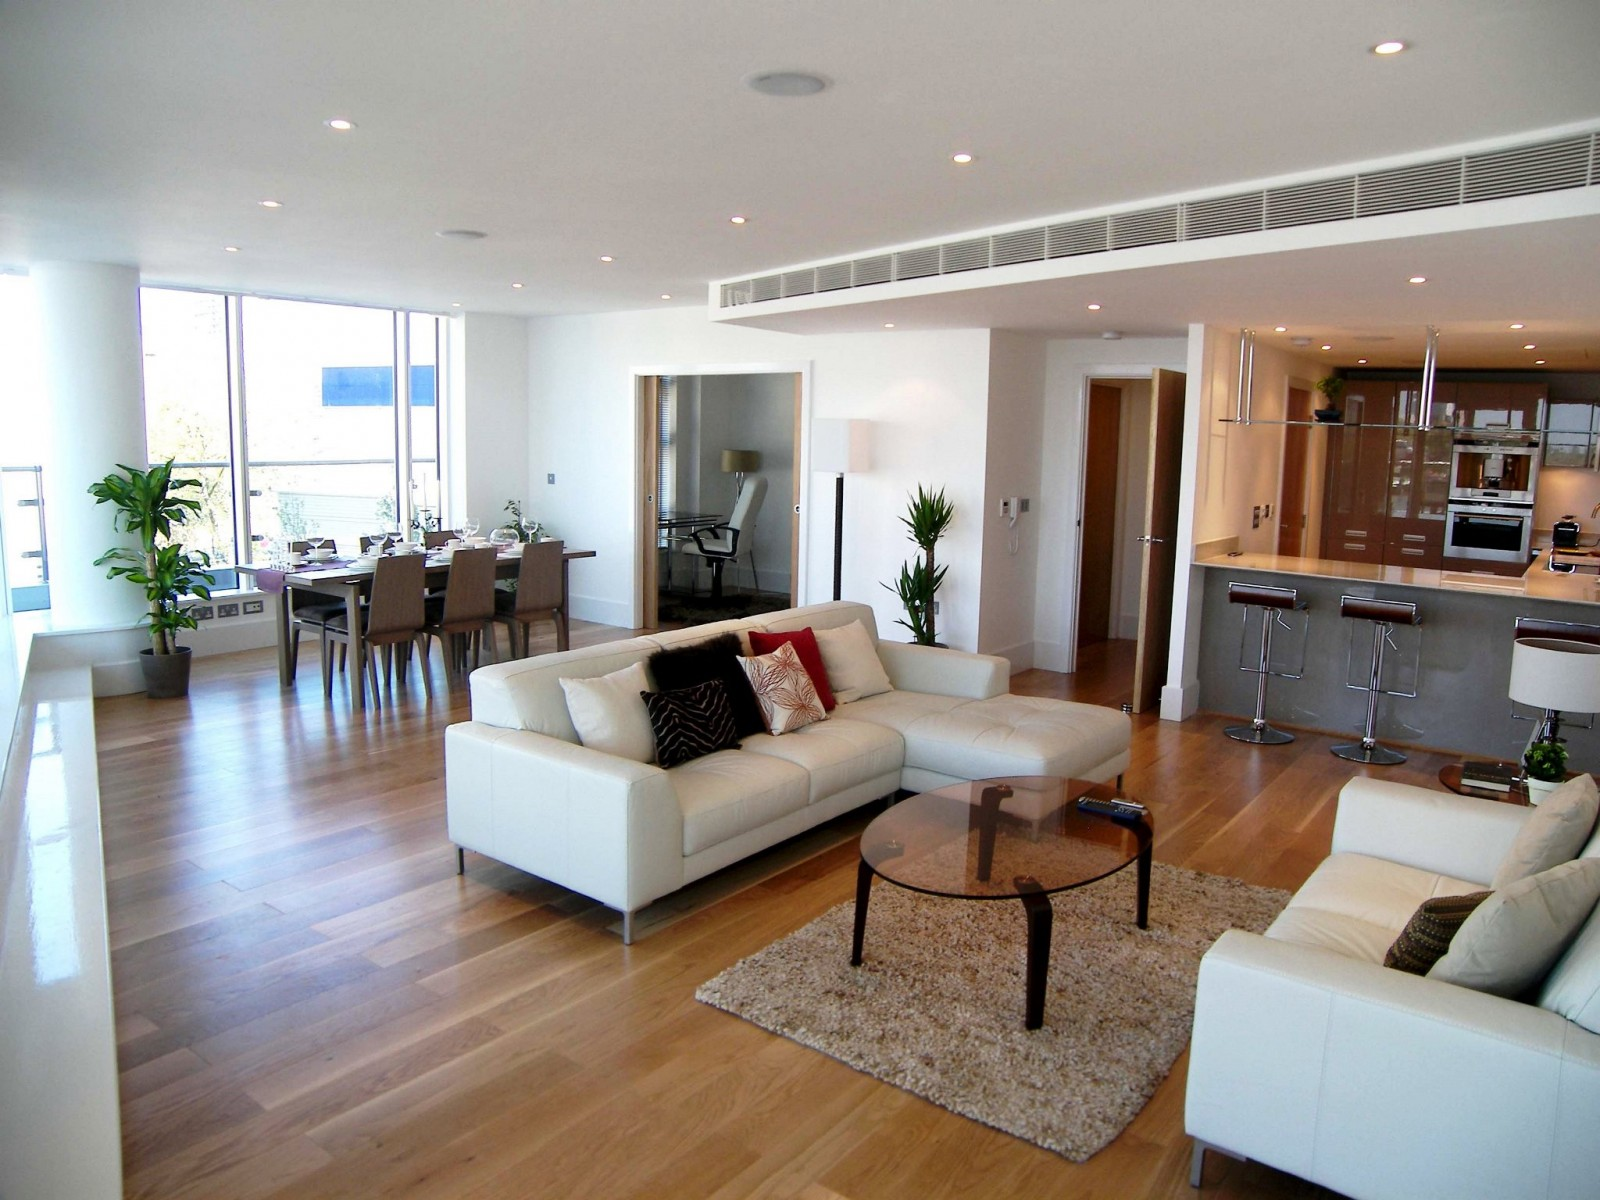 3 bedroom property to let in ensign house, wandsworth, sw18 - £900 pw